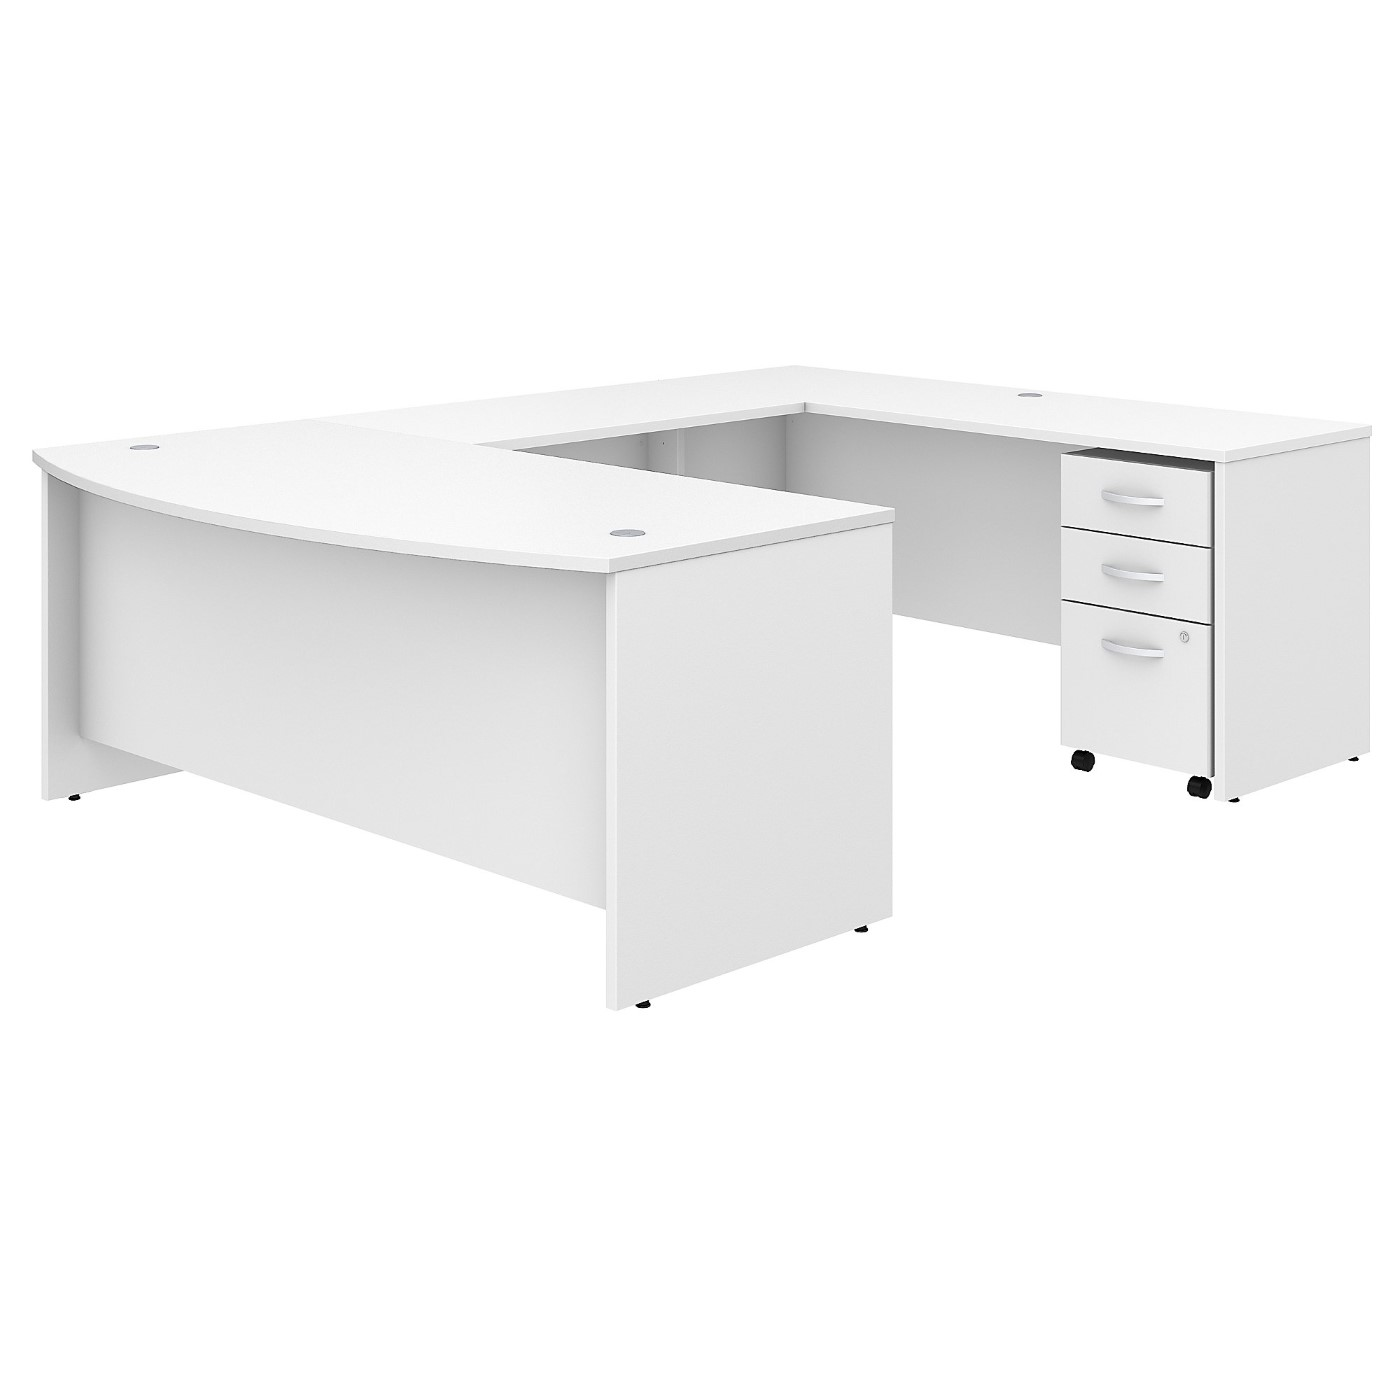 BUSH BUSINESS FURNITURE STUDIO C 72W X 36D U SHAPED DESK WITH MOBILE FILE CABINET. FREE SHIPPING